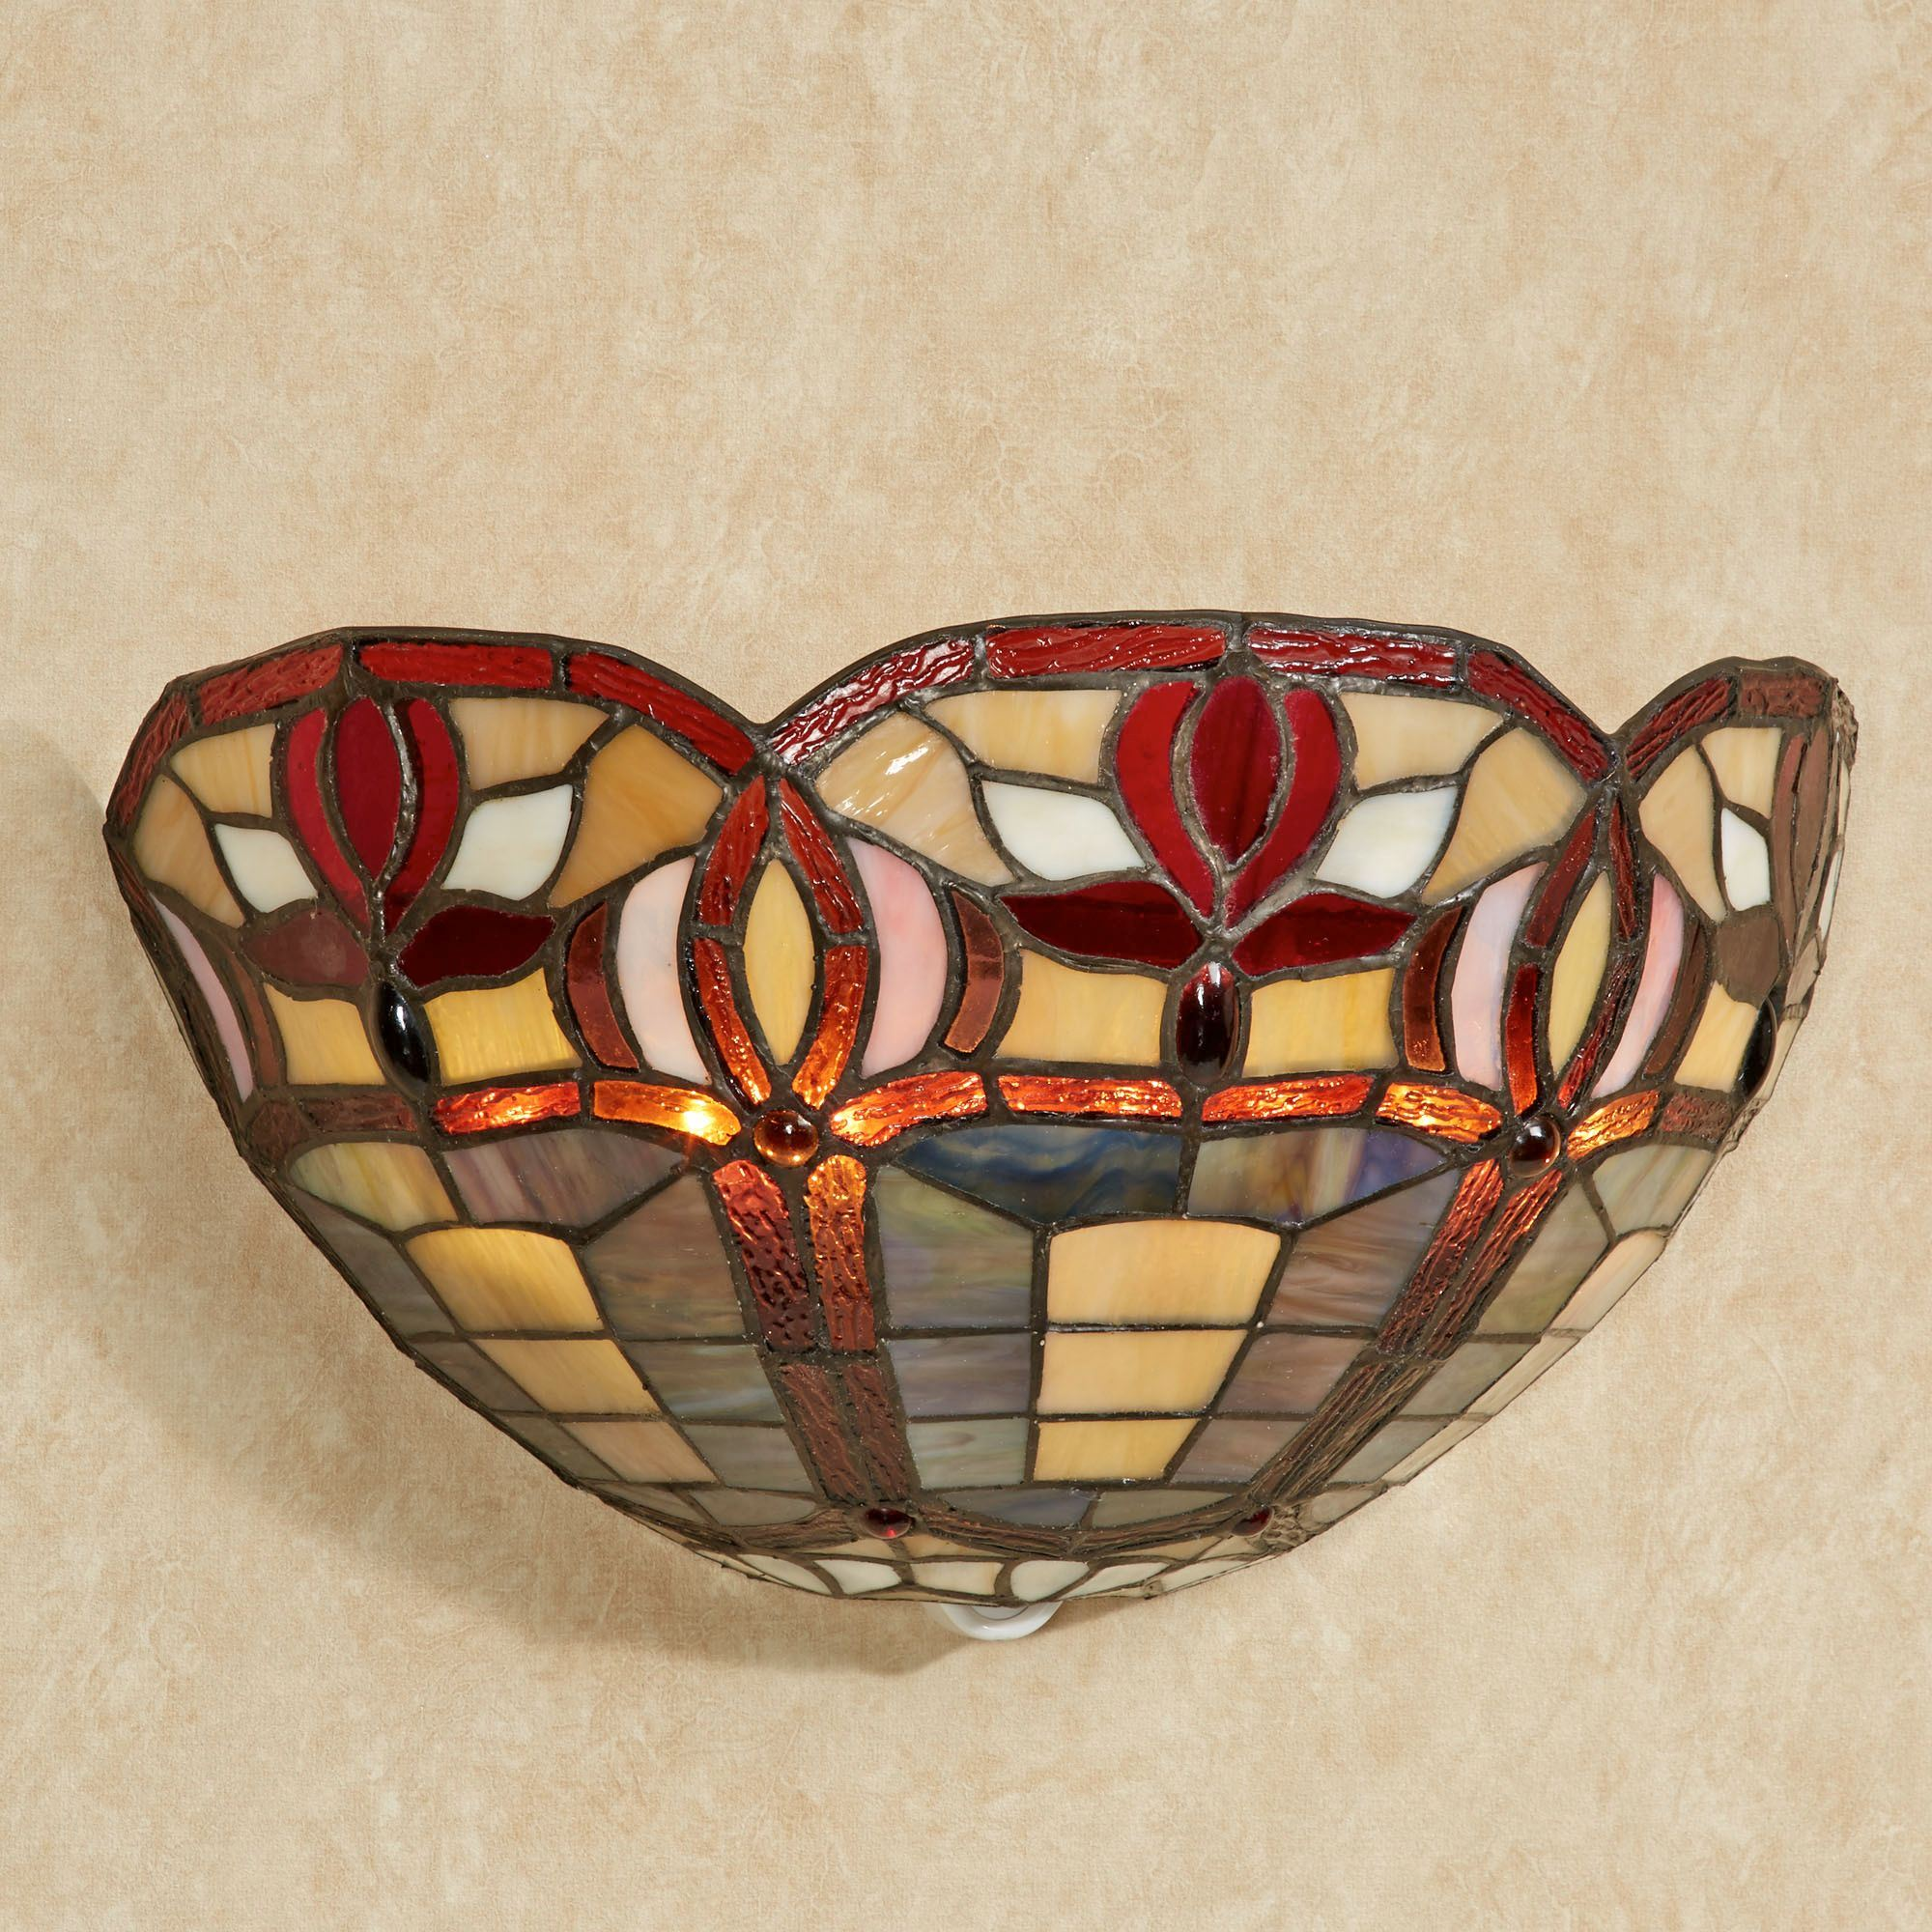 Roses stained glass led wall sconce click to expand amipublicfo Image collections